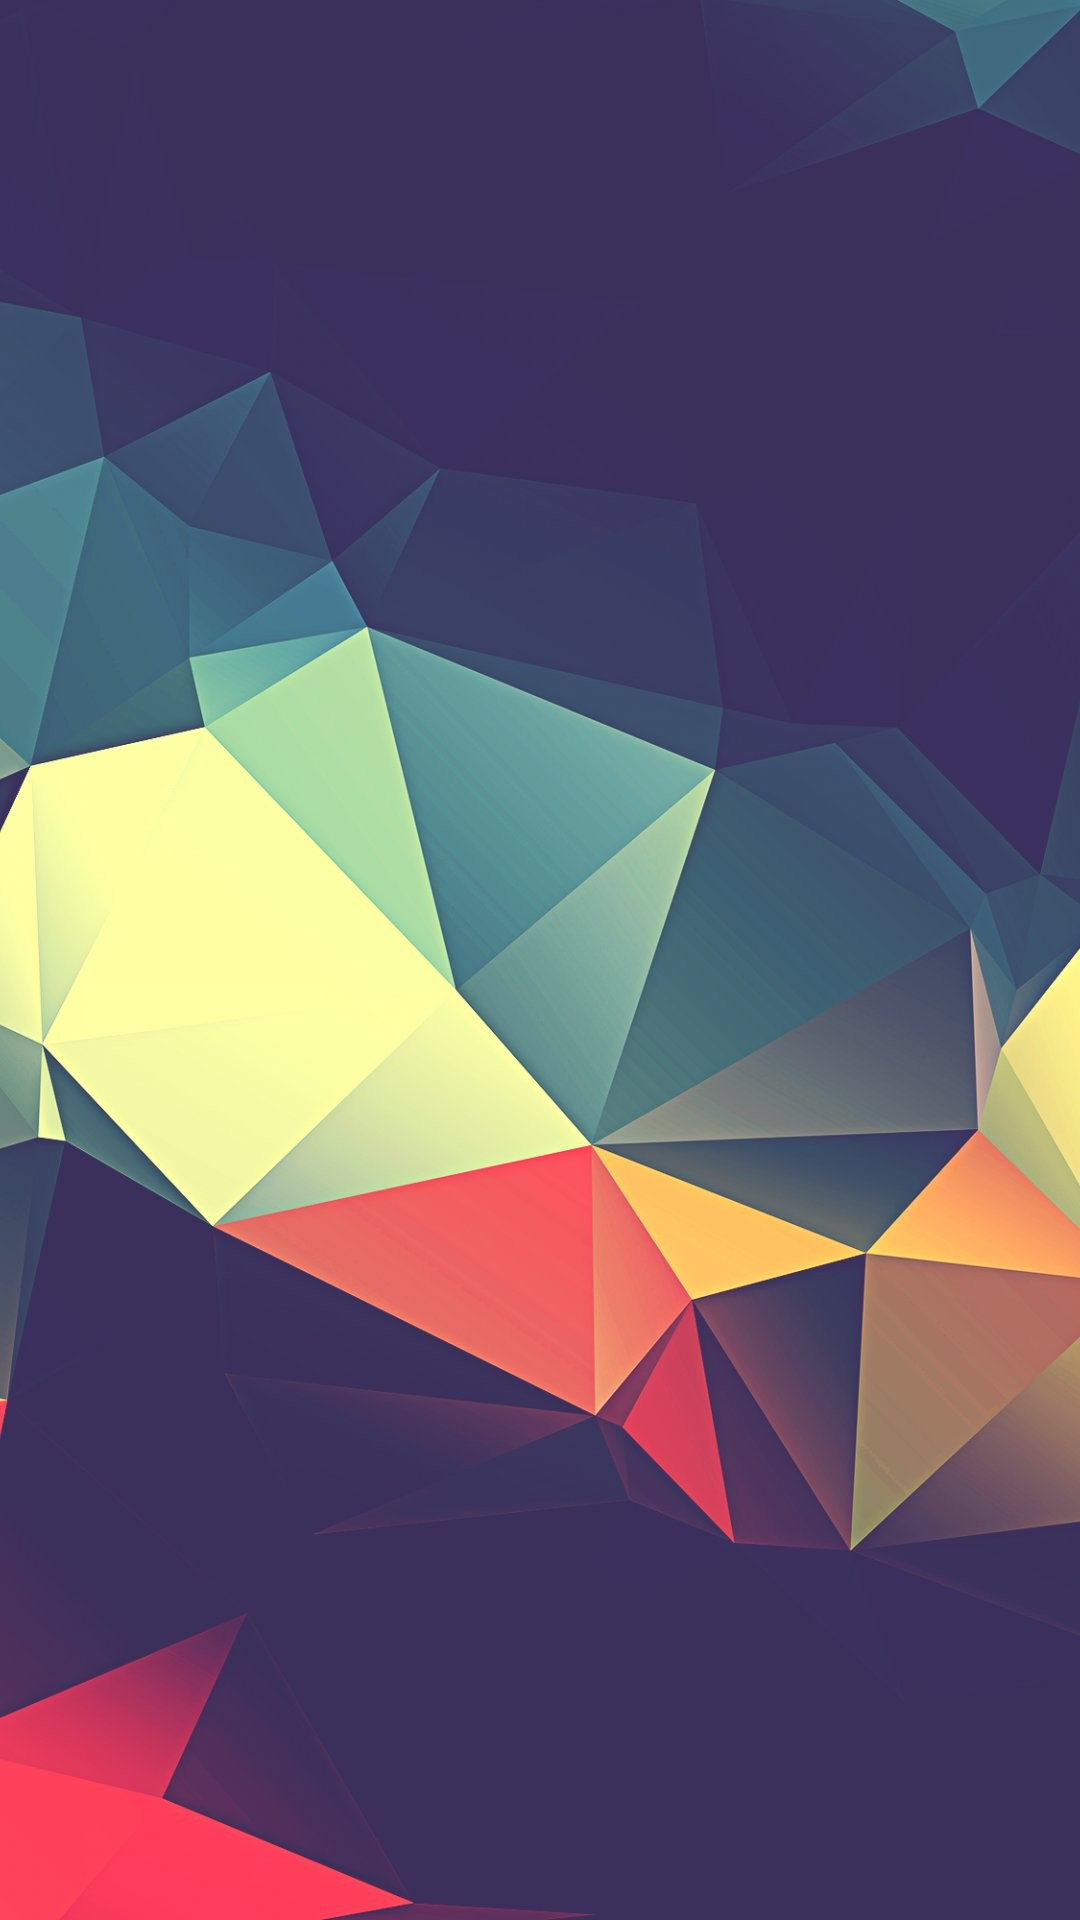 top polygon wallpaper abstract - photo #20